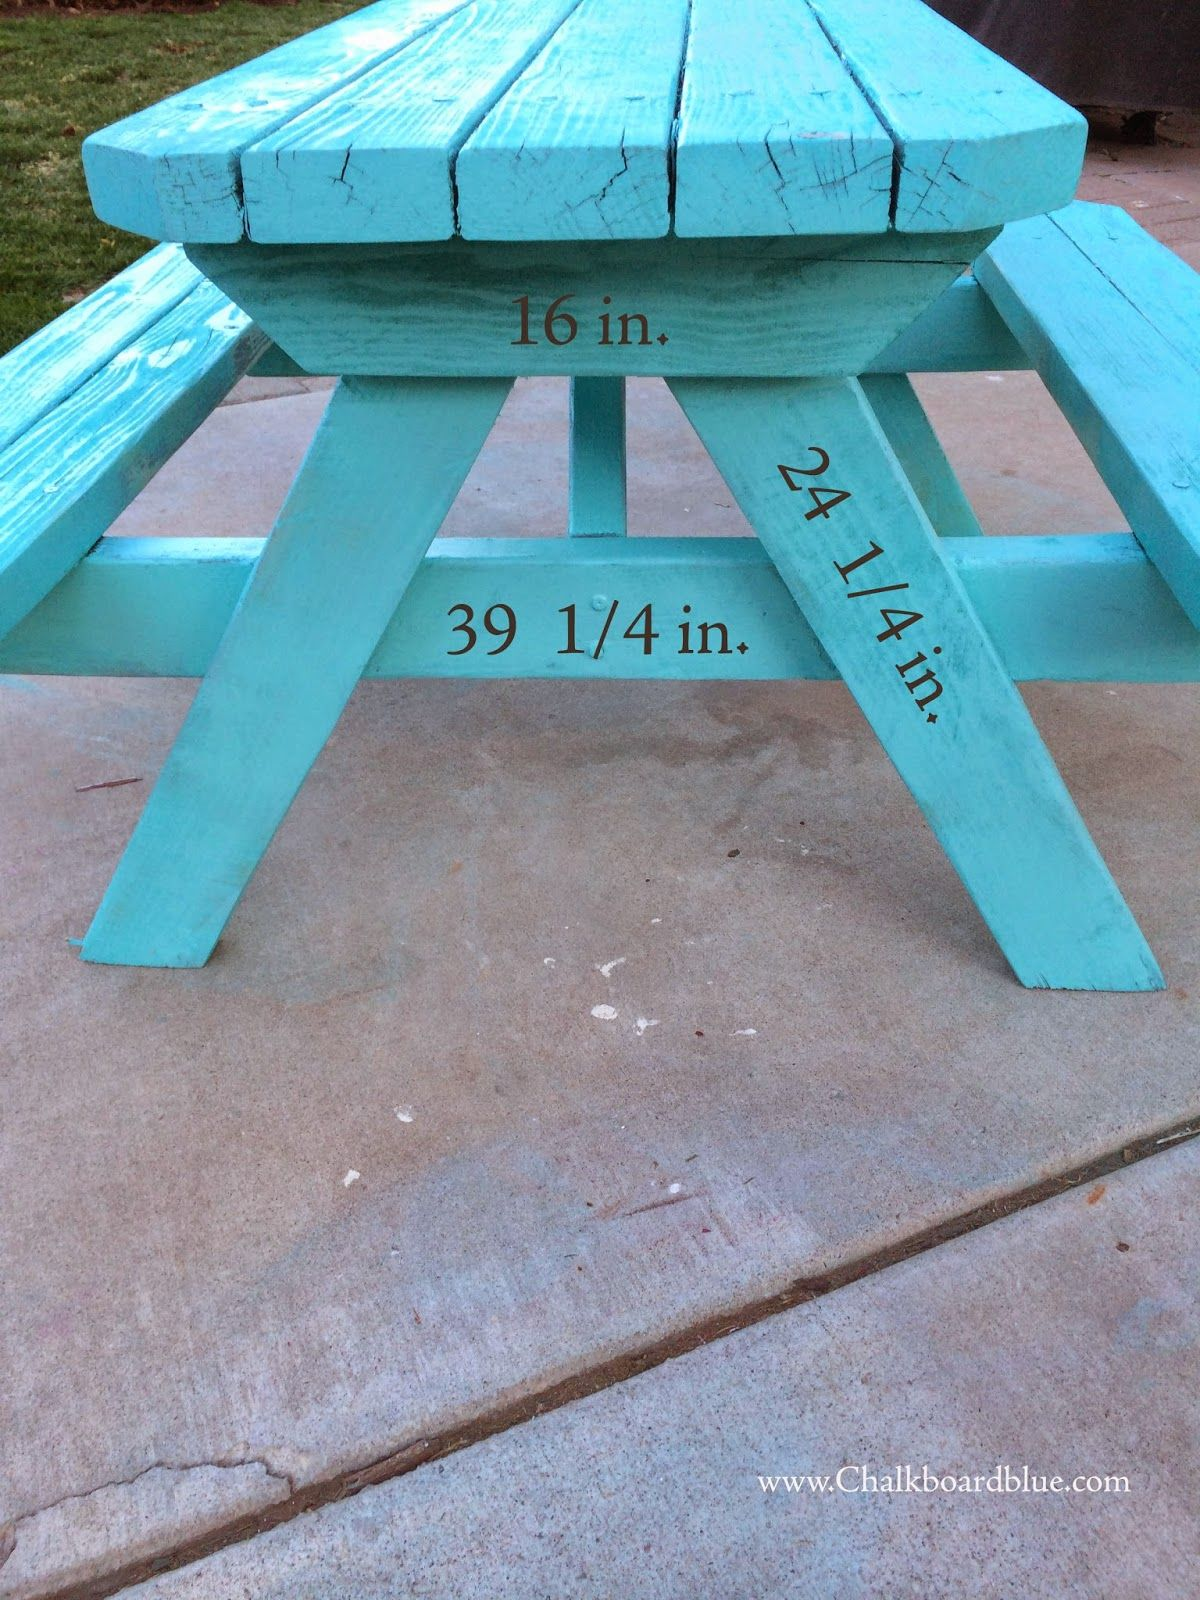 chalkboard blue how to build a kids pic nic table aria puppy rh pinterest com